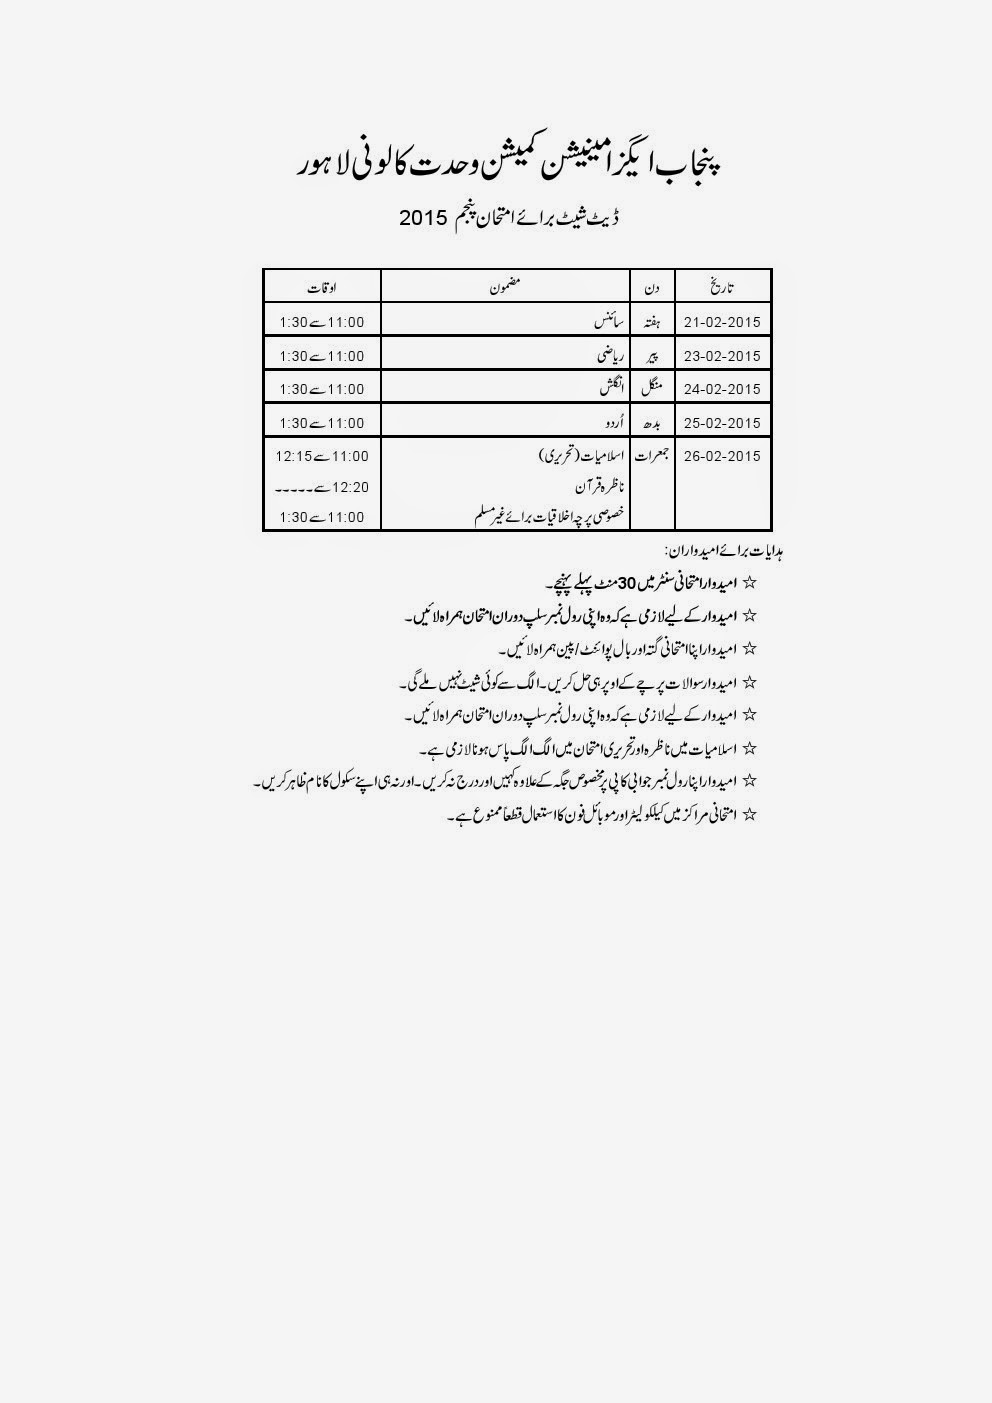 FINAL DATE SHEET OF PEC EXAMINATIONS 5TH AND 8TH 2015